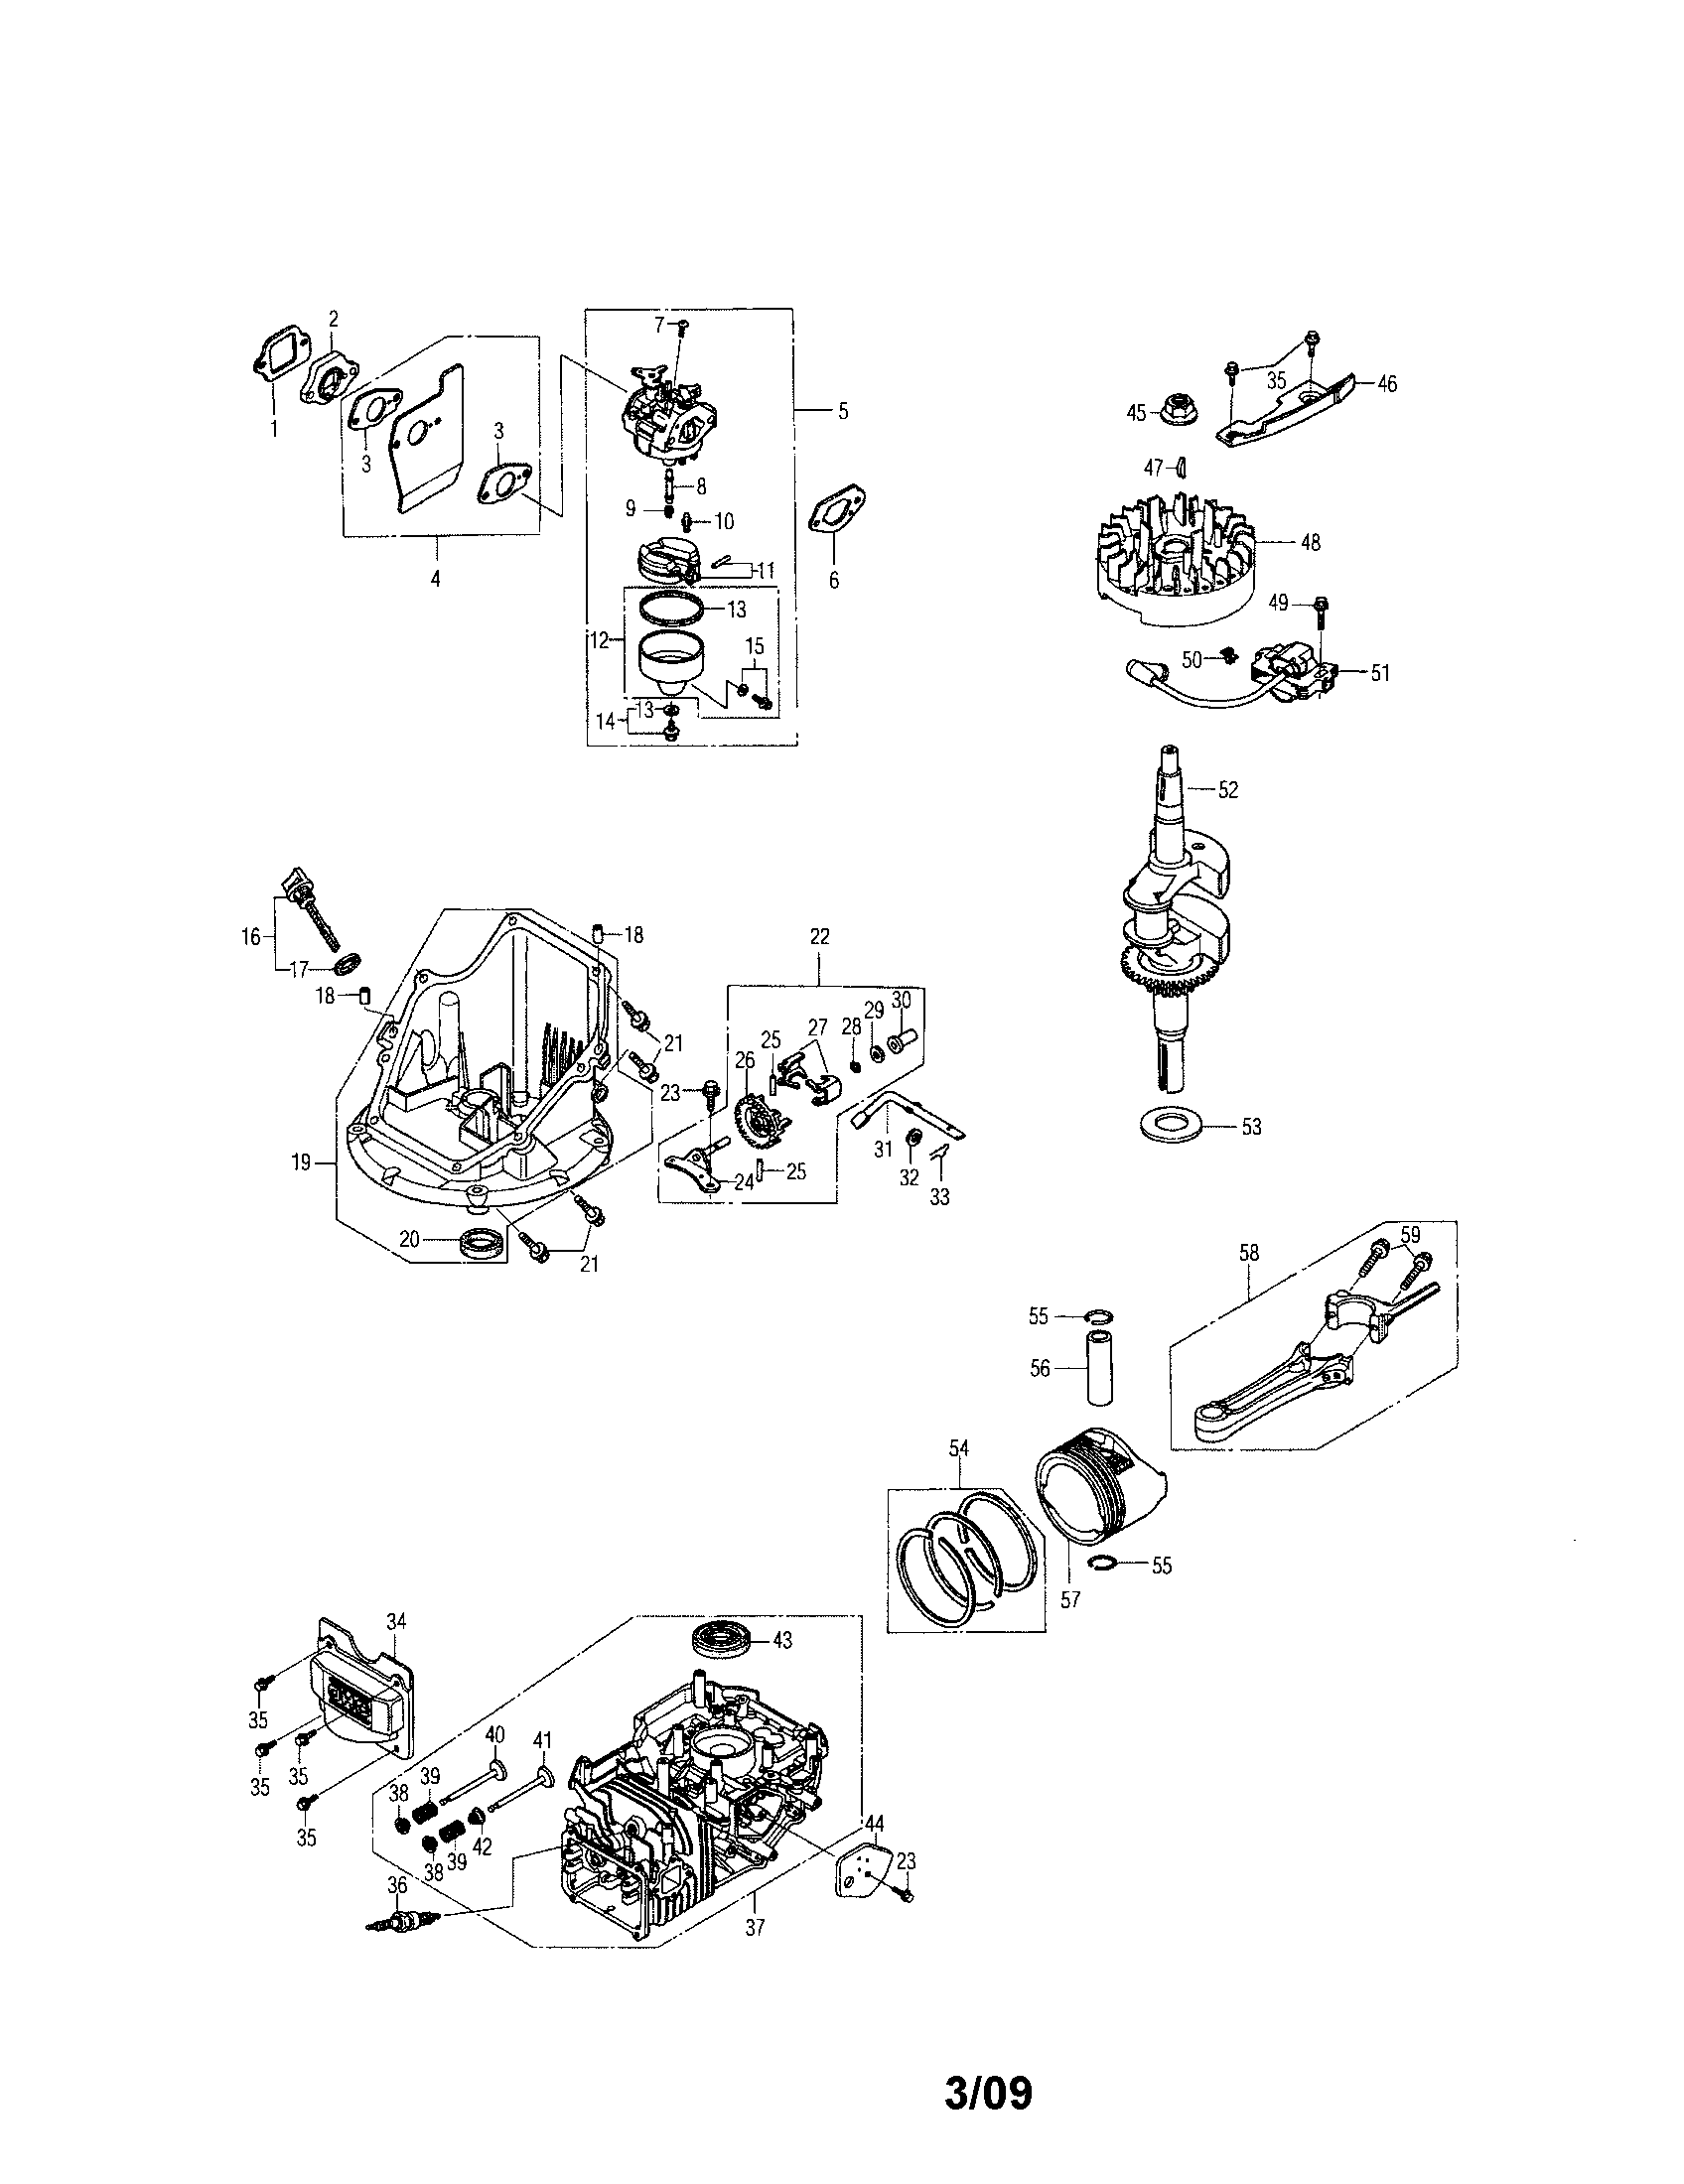 hight resolution of honda gcv160 lan5r cylinder crankshaft carburetor diagram